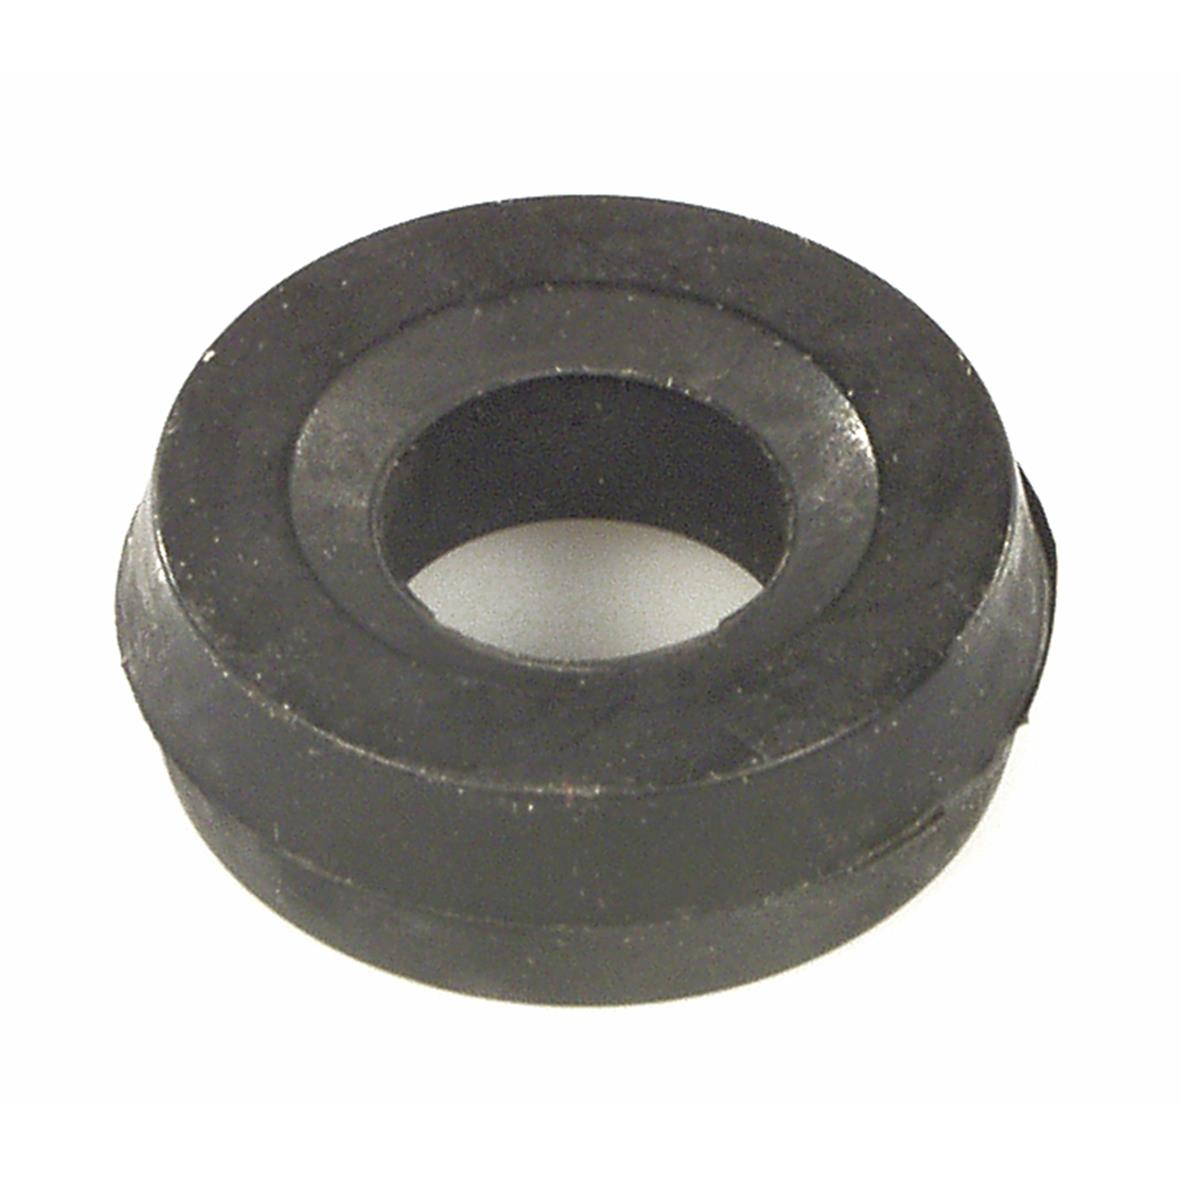 Product Image for 'Rubber Engine Mounting Bush shock absorber 10 mm Ø (inner) 14mm, (outer) 30 mm, front, topTitle'